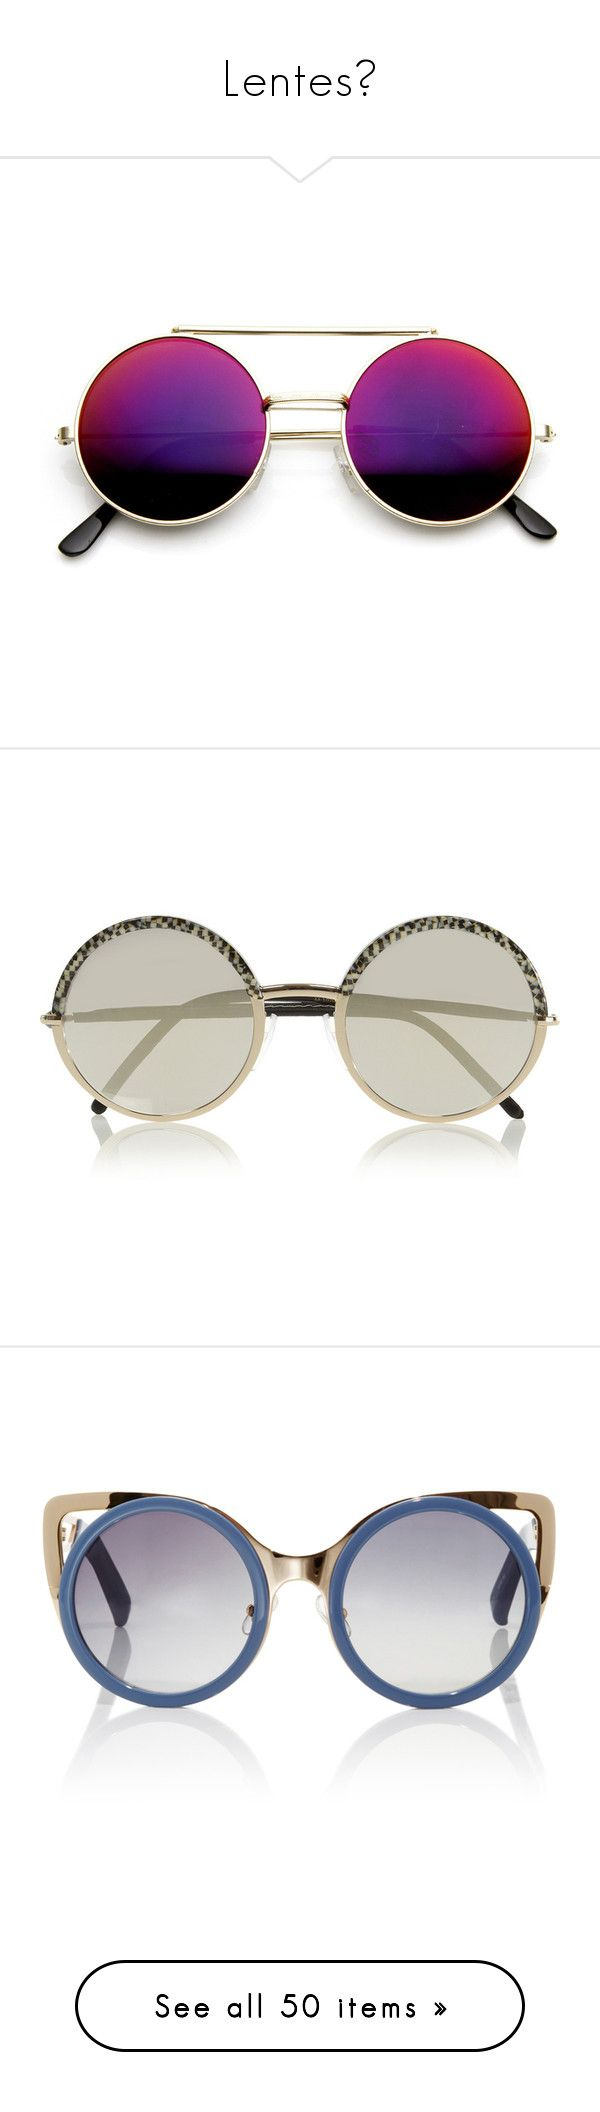 """Lentes☻"" by infinito01 ❤ liked on Polyvore featuring accessories, eyewear, sunglasses, glasses, round sunglasses, round circle sunglasses, revo sunglasses, retro round sunglasses, circular sunglasses and sunnies"